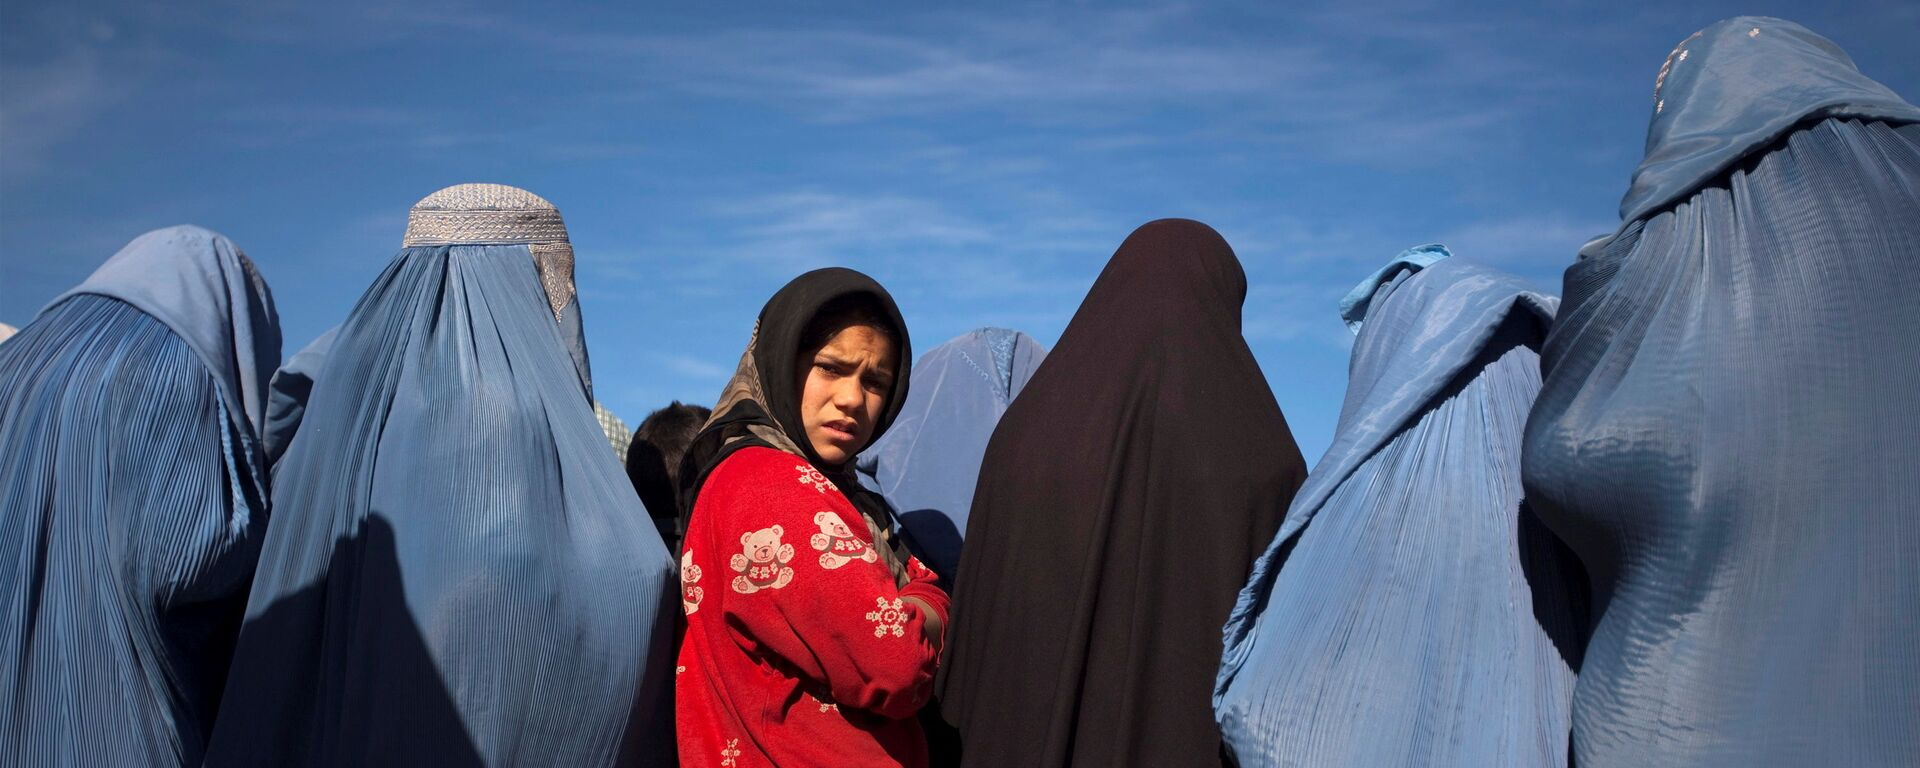 An Afghan girl stands among widows clad in burqas during a cash for work project by humanitarian organisation CARE International in Kabul - Sputnik International, 1920, 07.09.2021